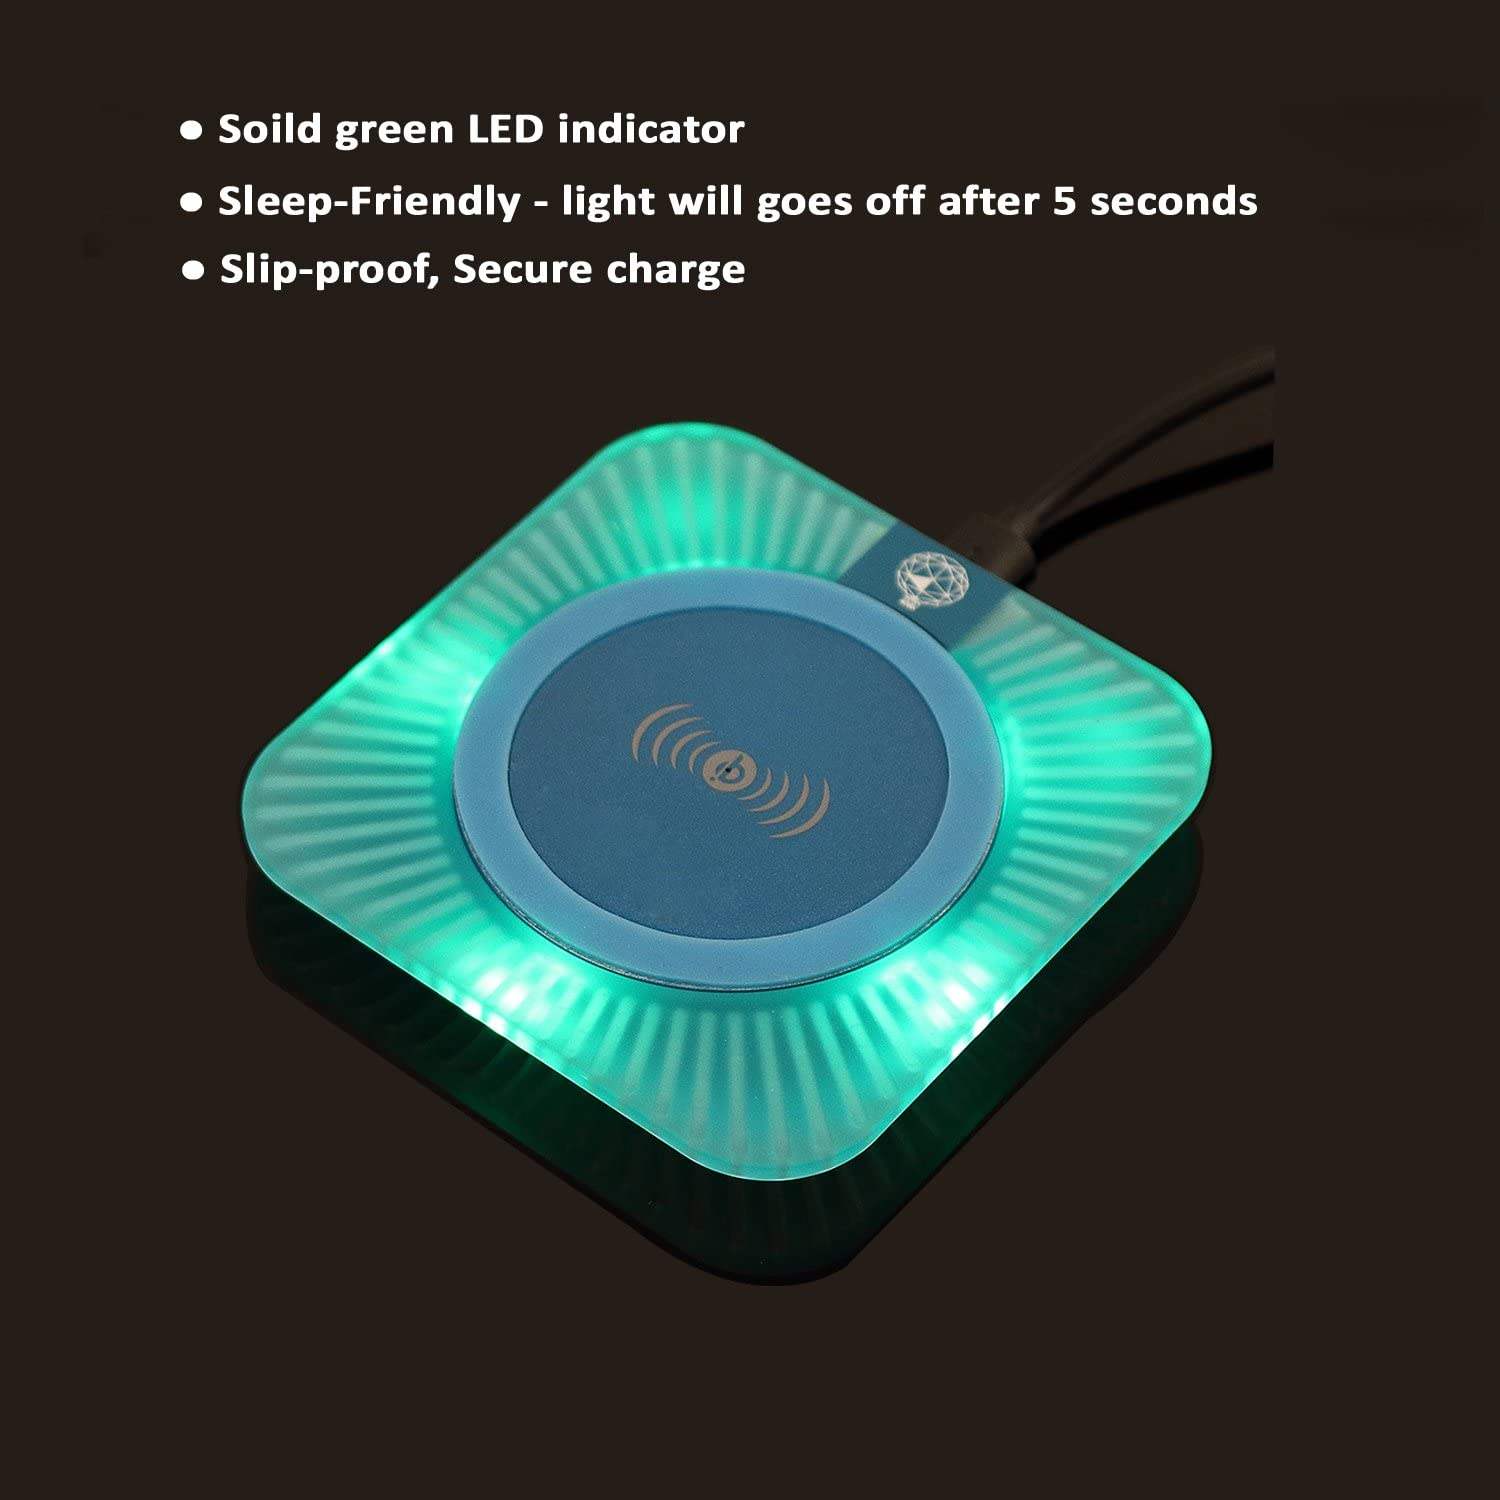 Including Sleep-Friendly Wireless Charging Pad and Qi Wireless Receiver Case Back Cover Black 2-in1 Antye Qi Wireless Charger Kit for iPhone 7 Plus,